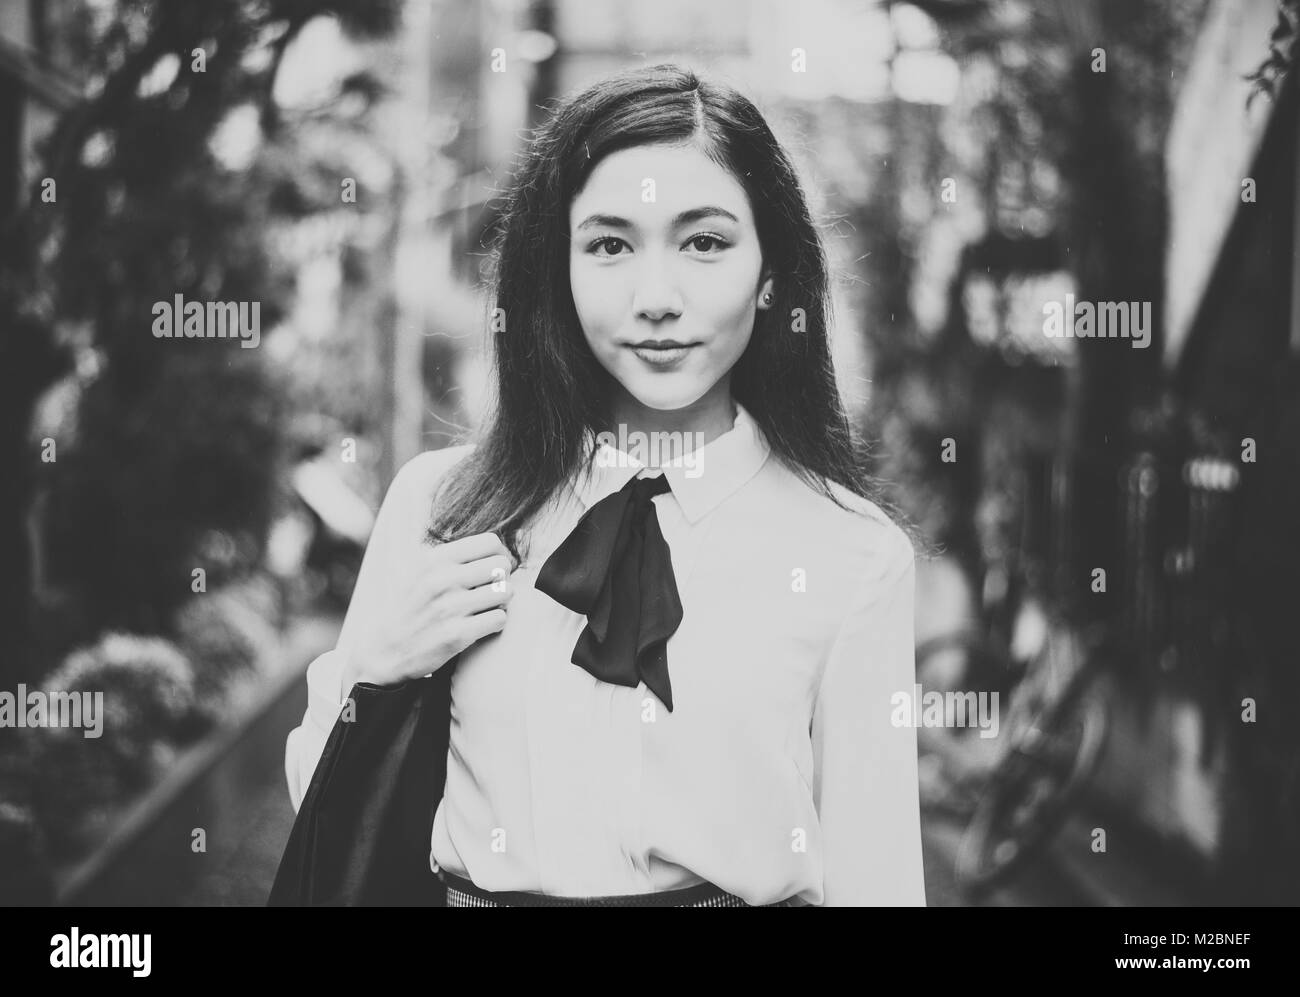 Japanese girl black and white stock photos images alamy